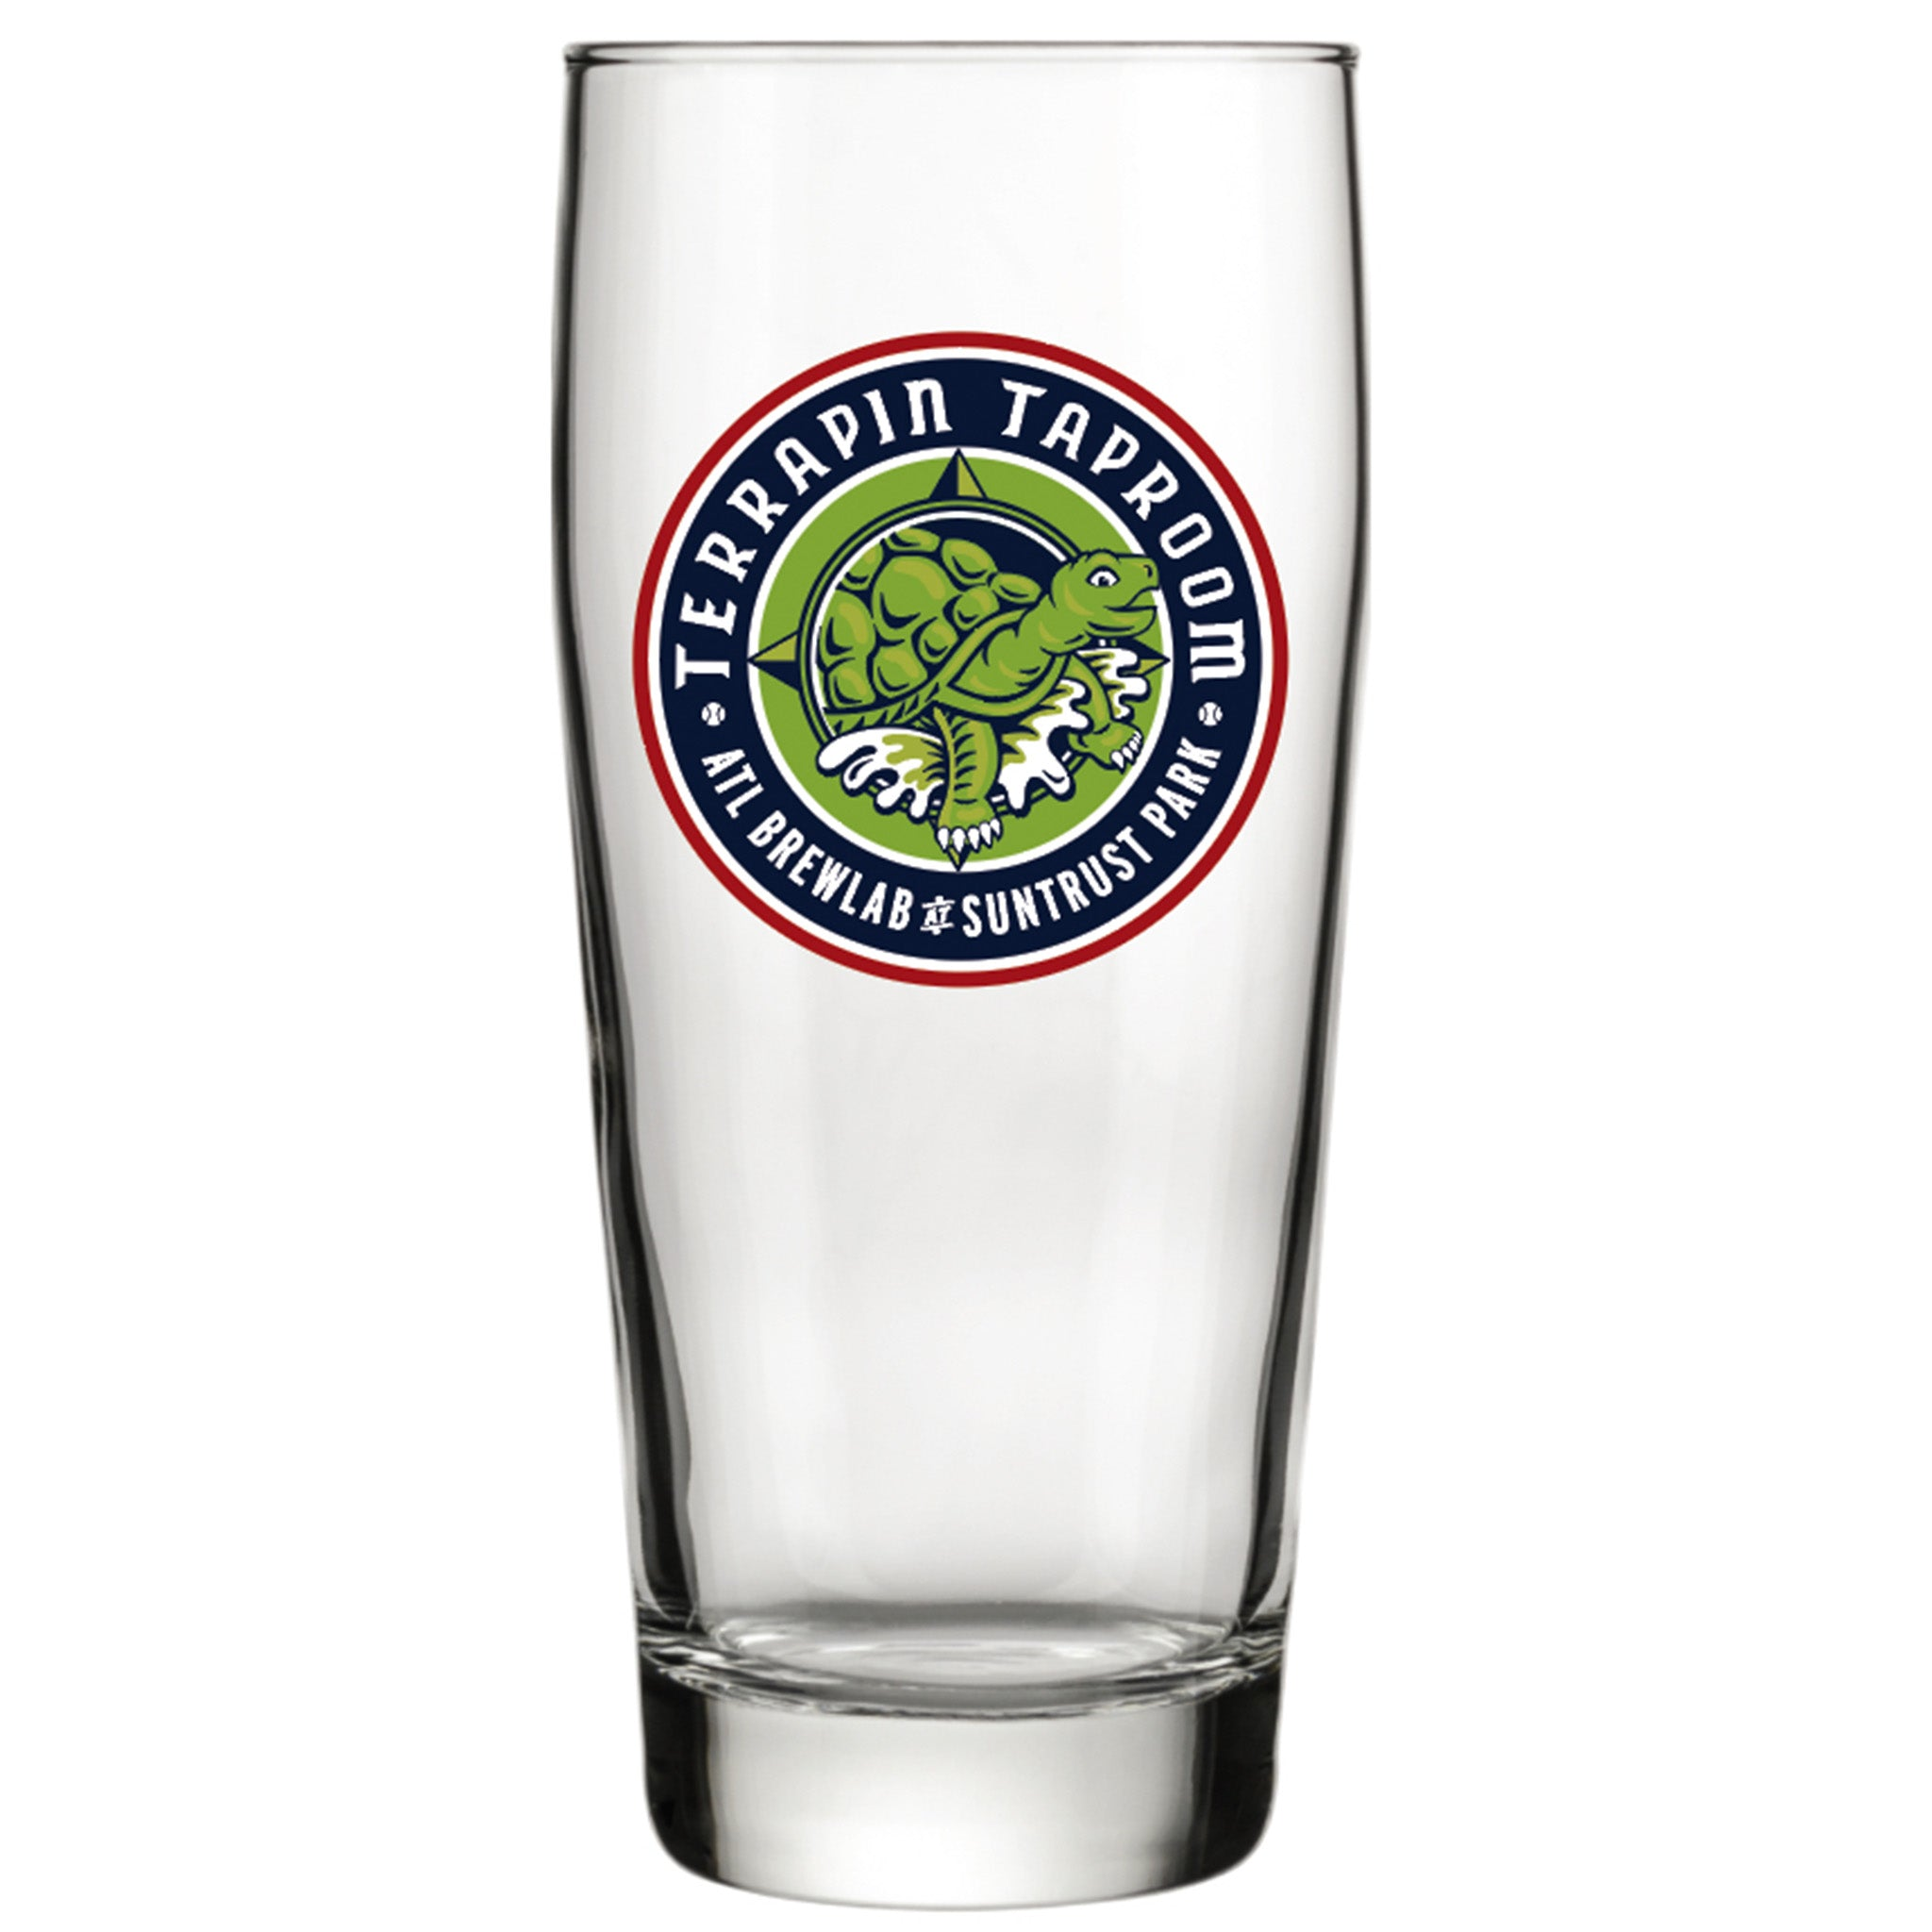 16oz ATL Brew Lab Willi Becher Glass